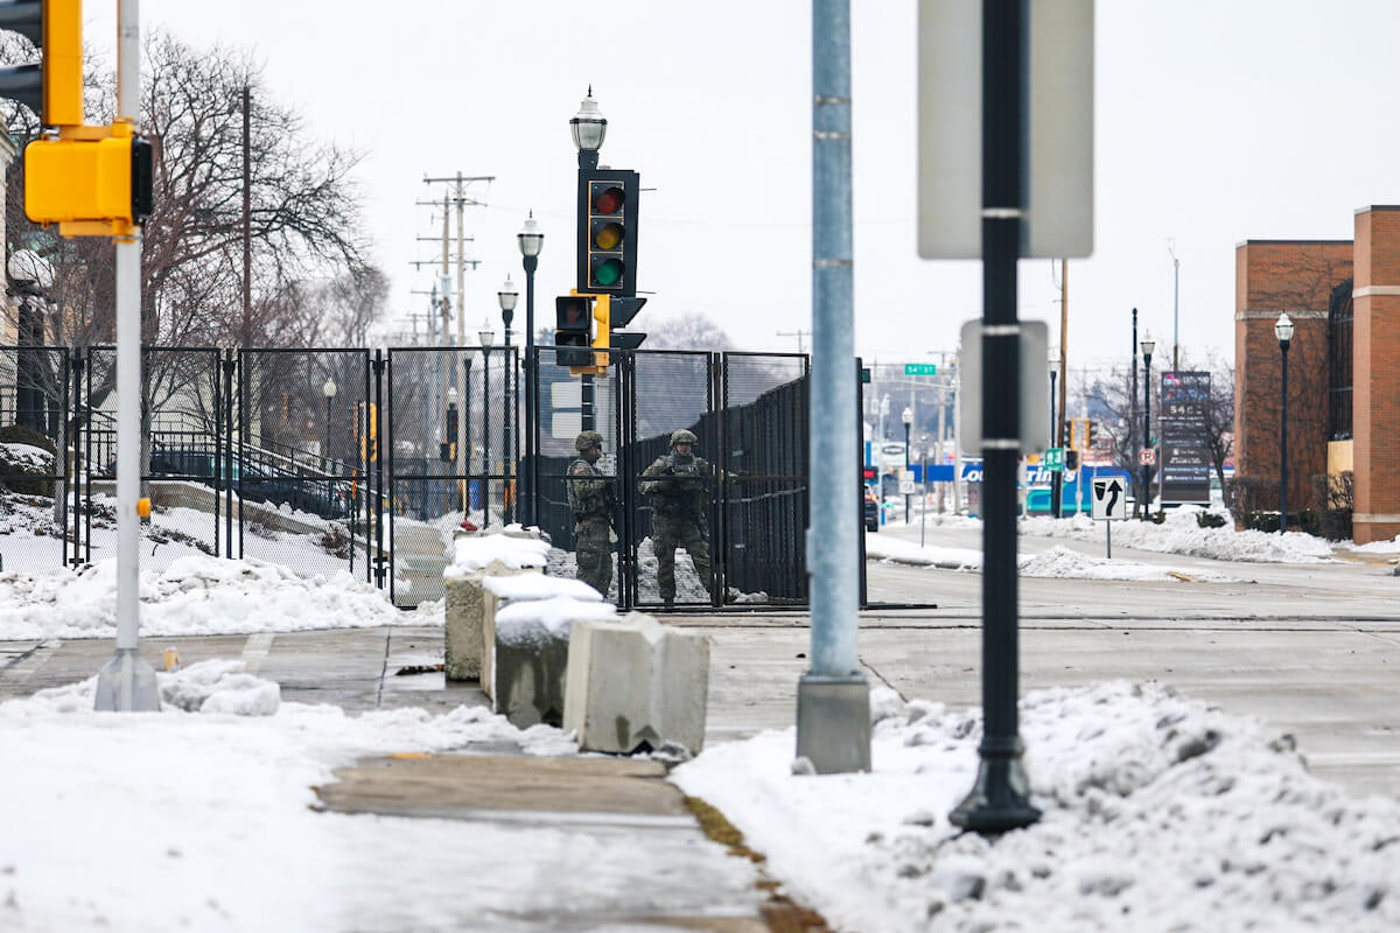 Two members of the Wisconsin National Guard stand behind a fence erected around the Kenosha Courthouse in advance of last week's Kenosha County Attorney General's decision over whether to charge the officer who shot and paralyzed Jacob Blake. The two troops were among 500 activated by Gov. Tony Evers in advance of the decision. (Photo by Samer Ghani)